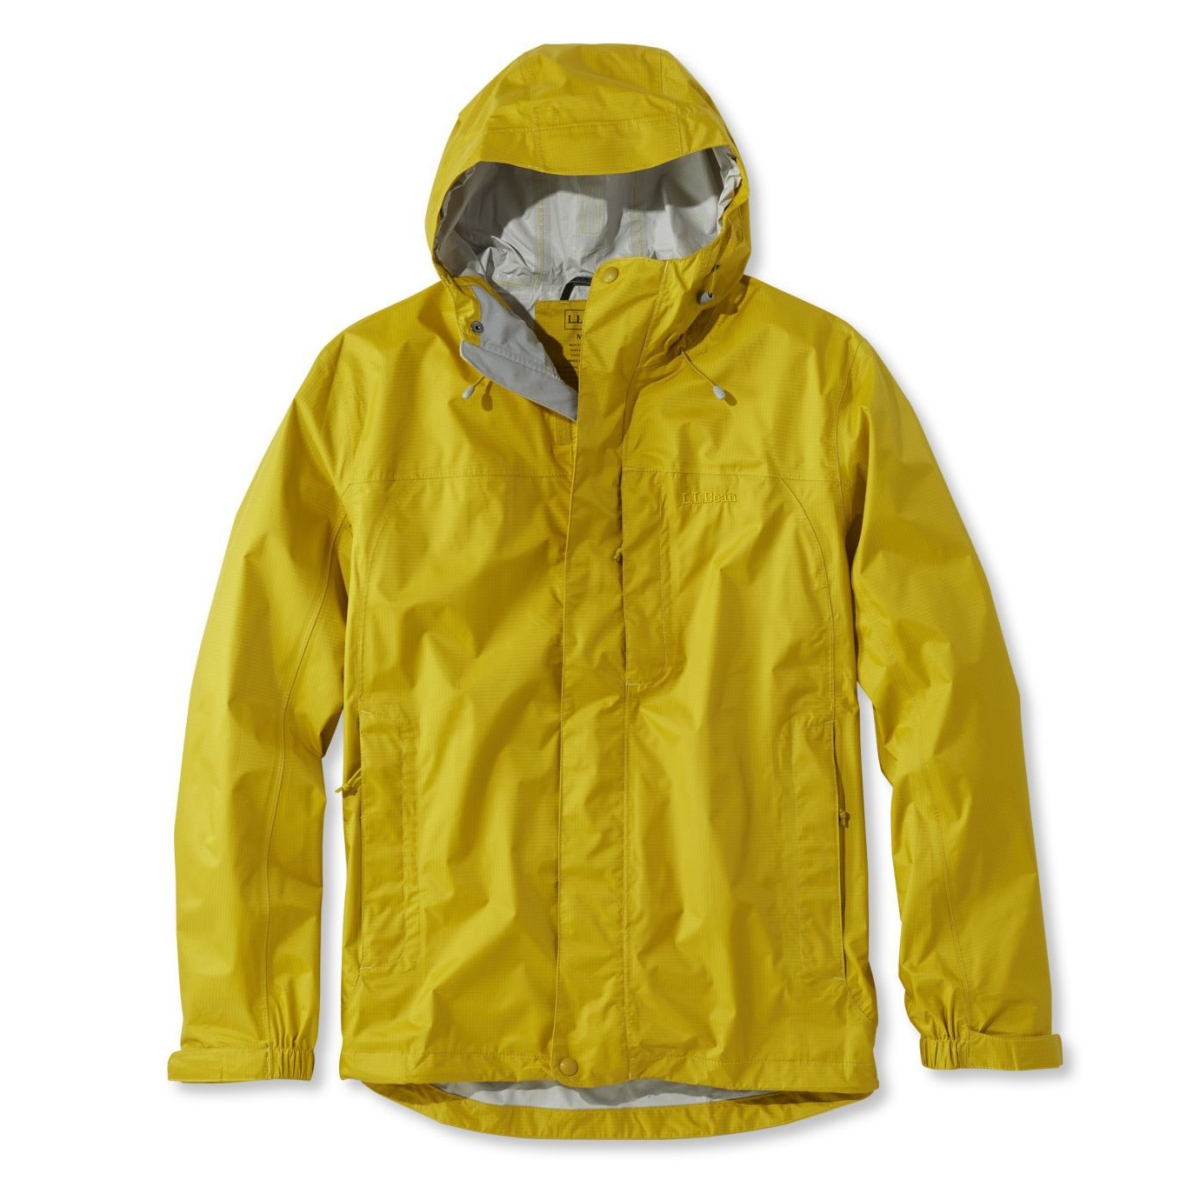 752b9ceb2 The 20 Coolest Rain Jackets for Men: Spring 2018